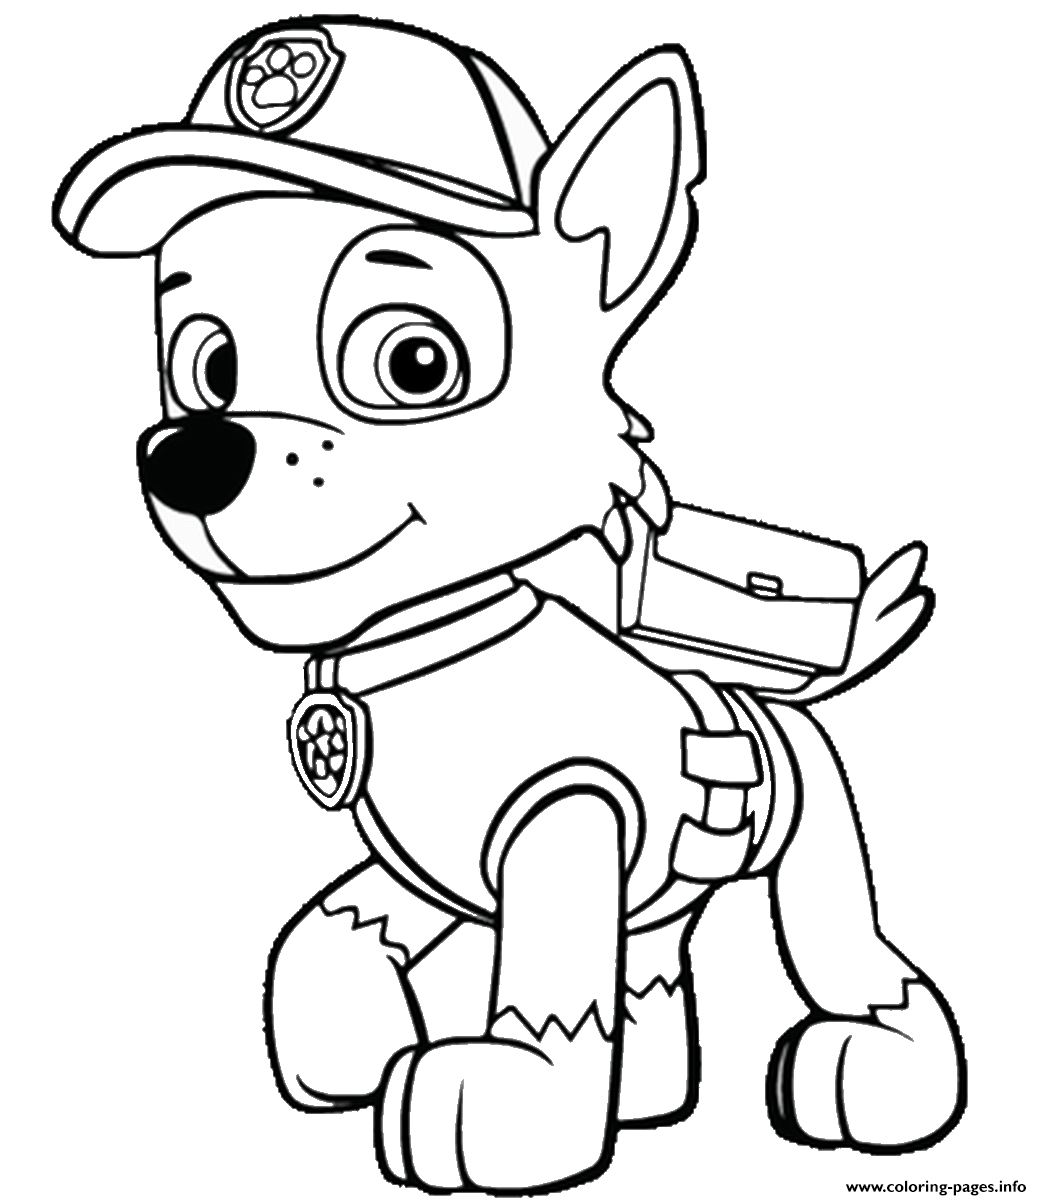 paw patrol lookout coloring page paw patrol lookout tower coloring page coloring pages patrol lookout page paw coloring